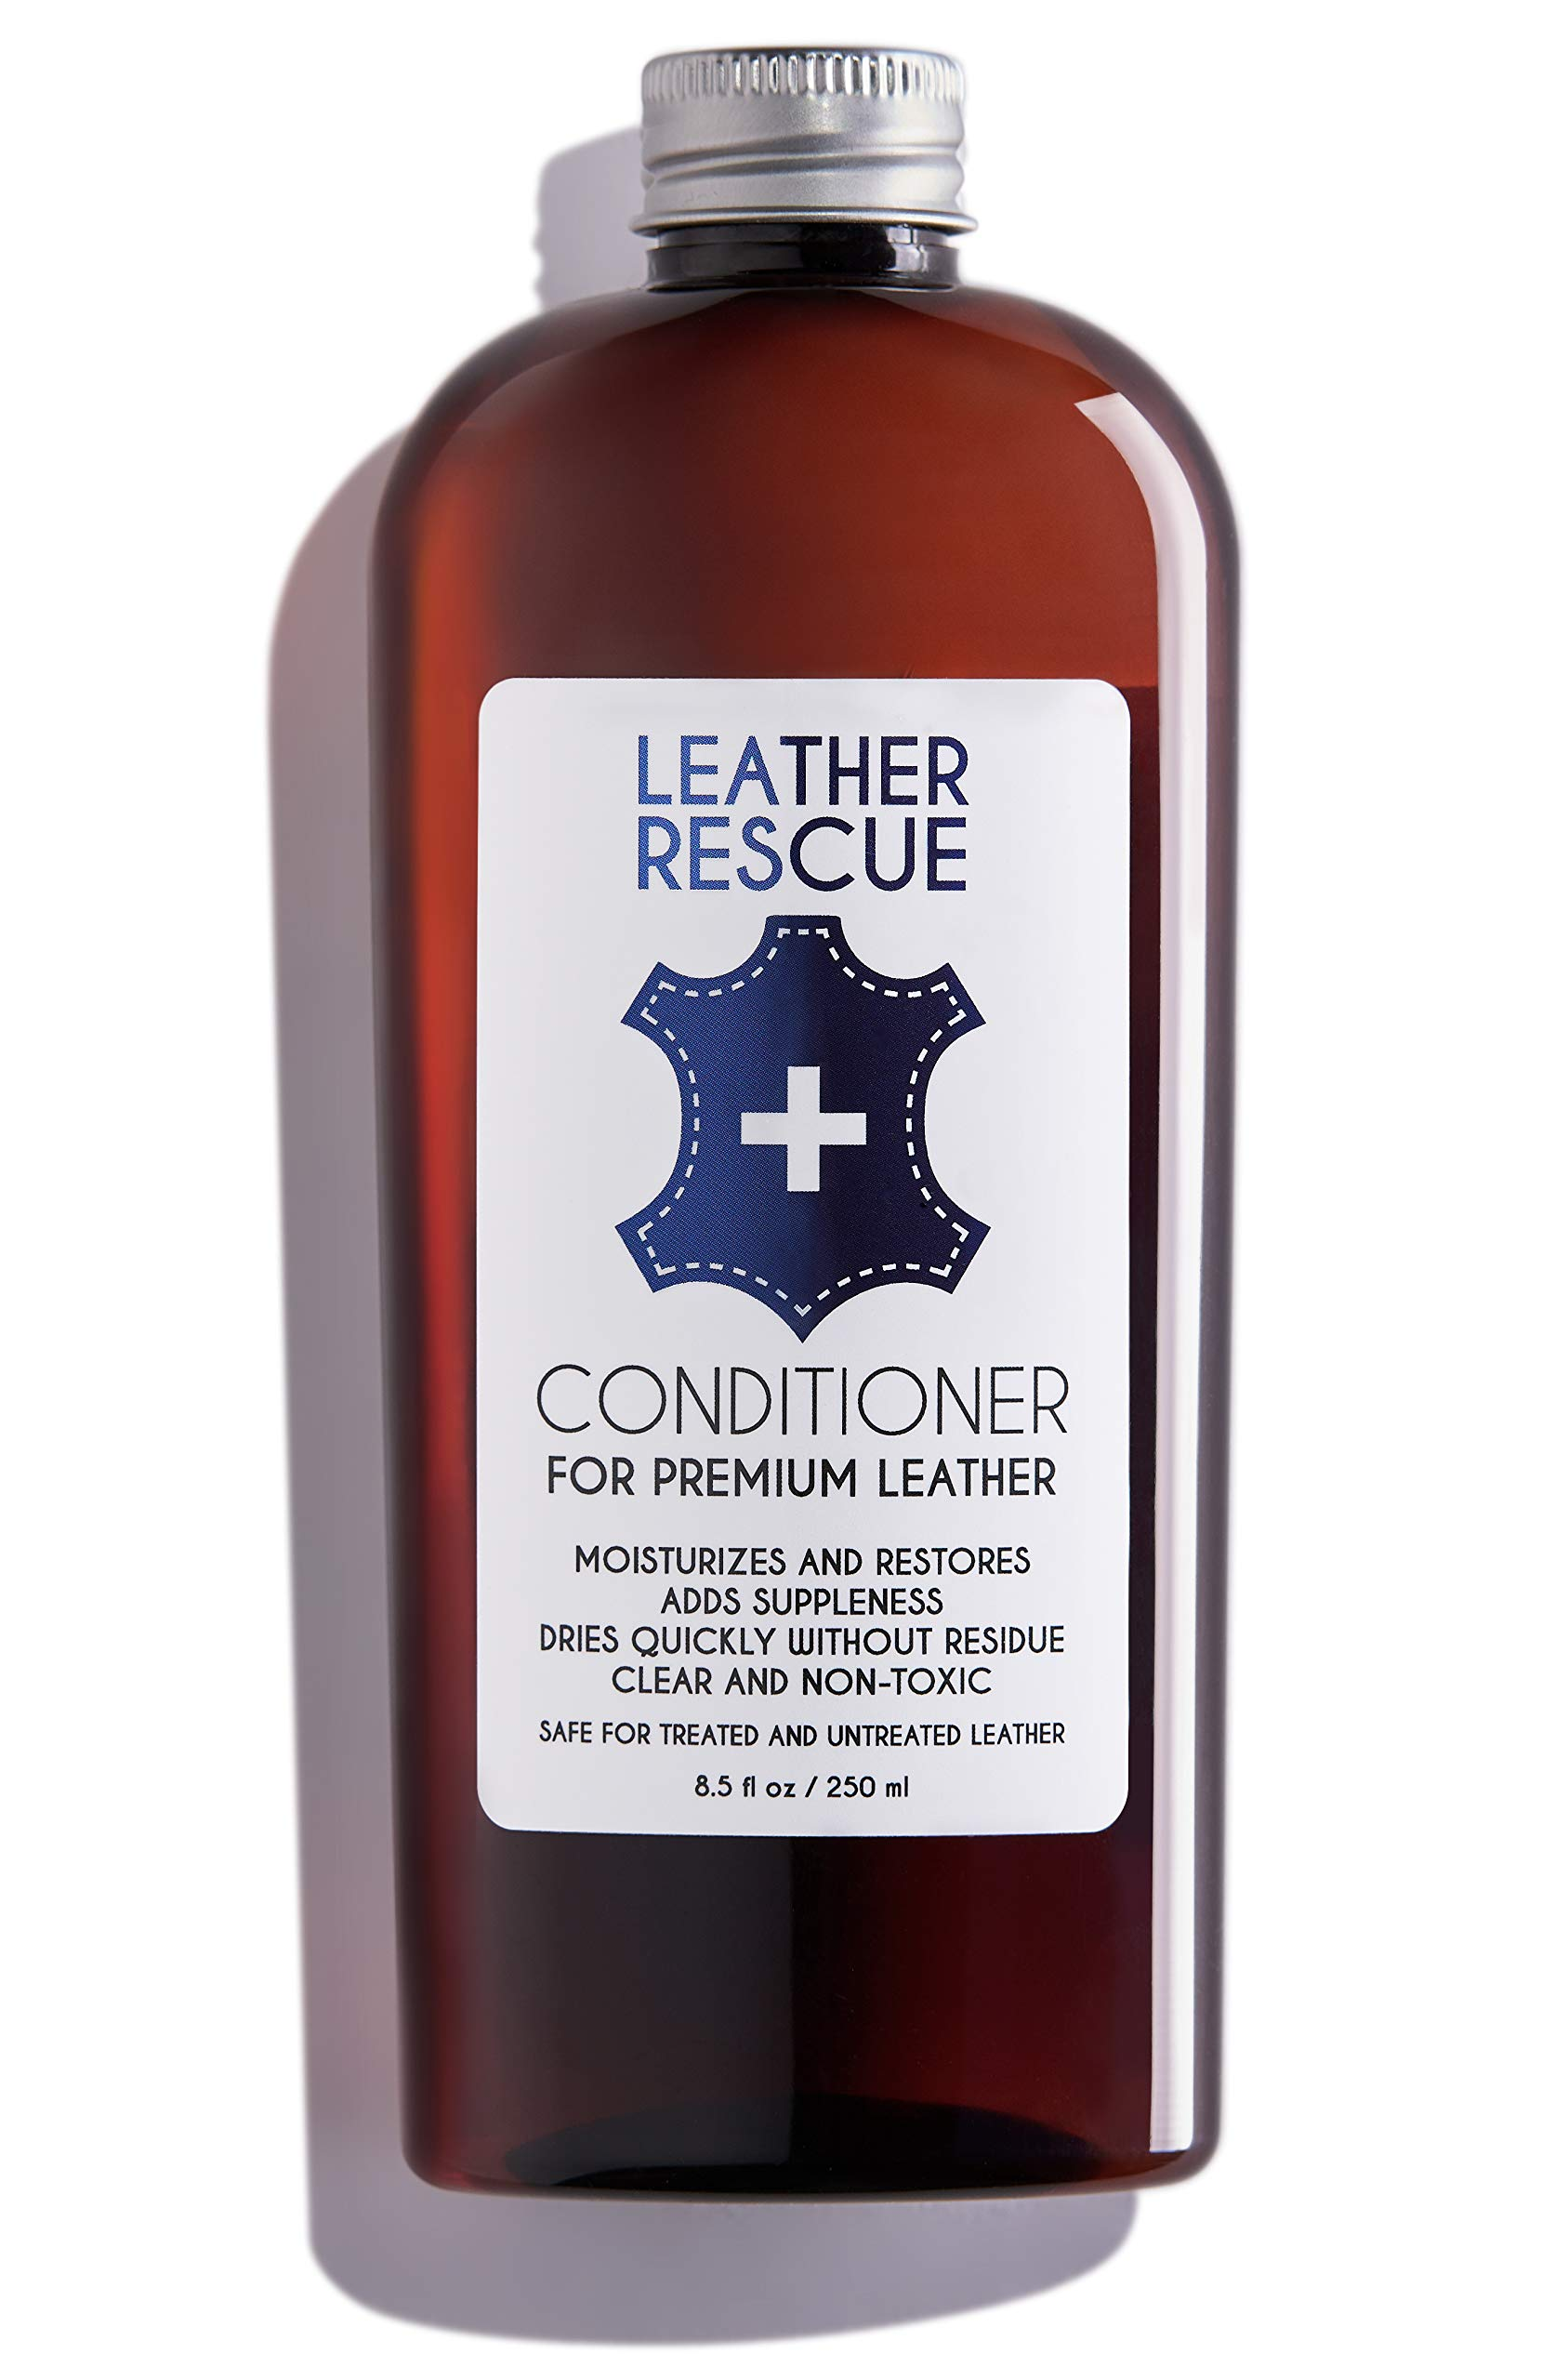 Leather Rescue Conditioner and Restorer | for Car Seats and Interiors, Jackets, Shoes, Bags, Purses, and Furniture | 8.5 oz by Leather Rescue